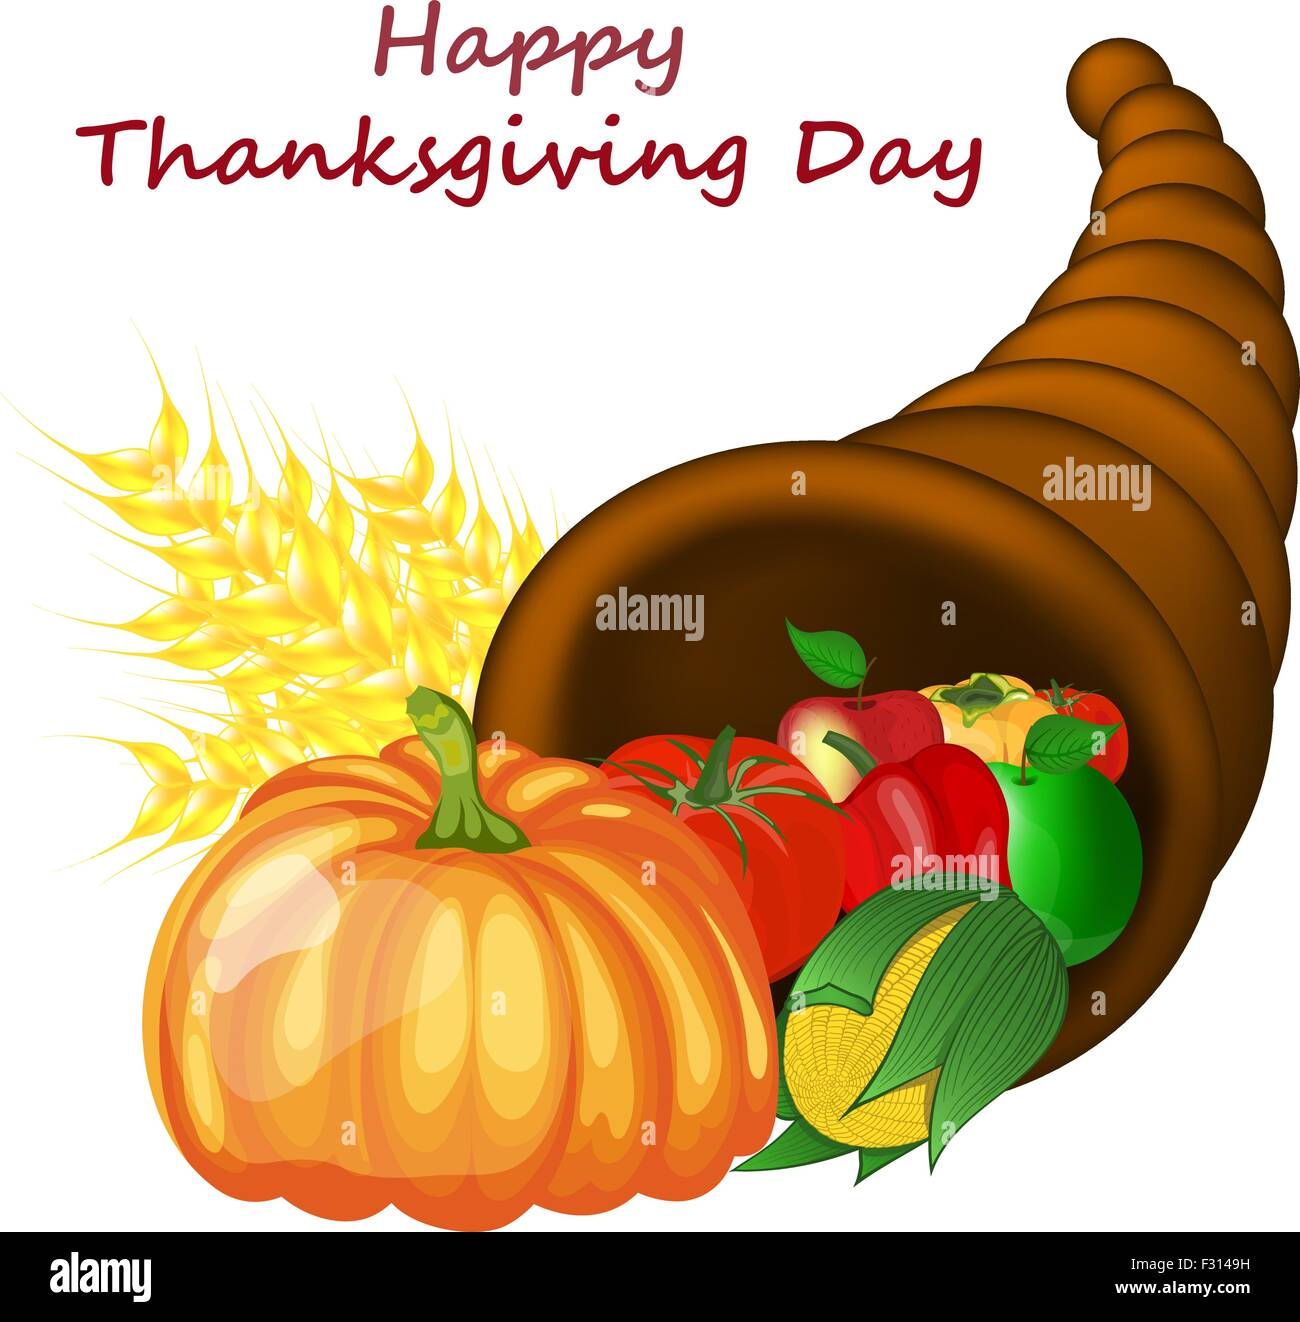 thanksgiving day greeting card design consist from cornucopia stock